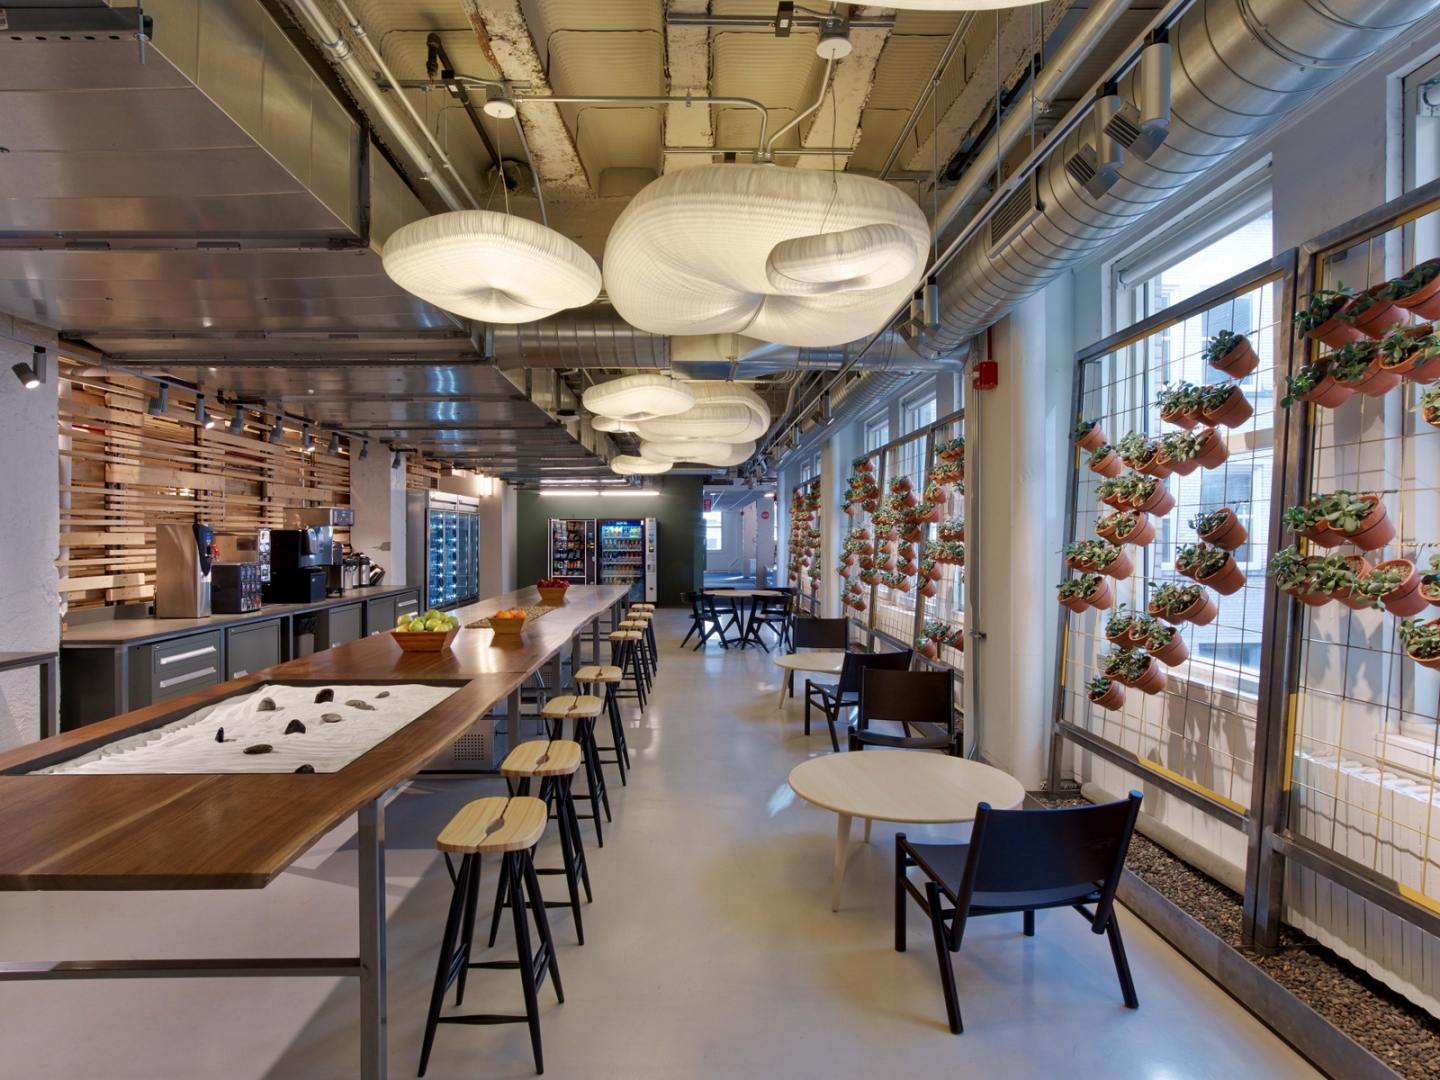 molo cloud light pendants at the Motorola offices in Chicago